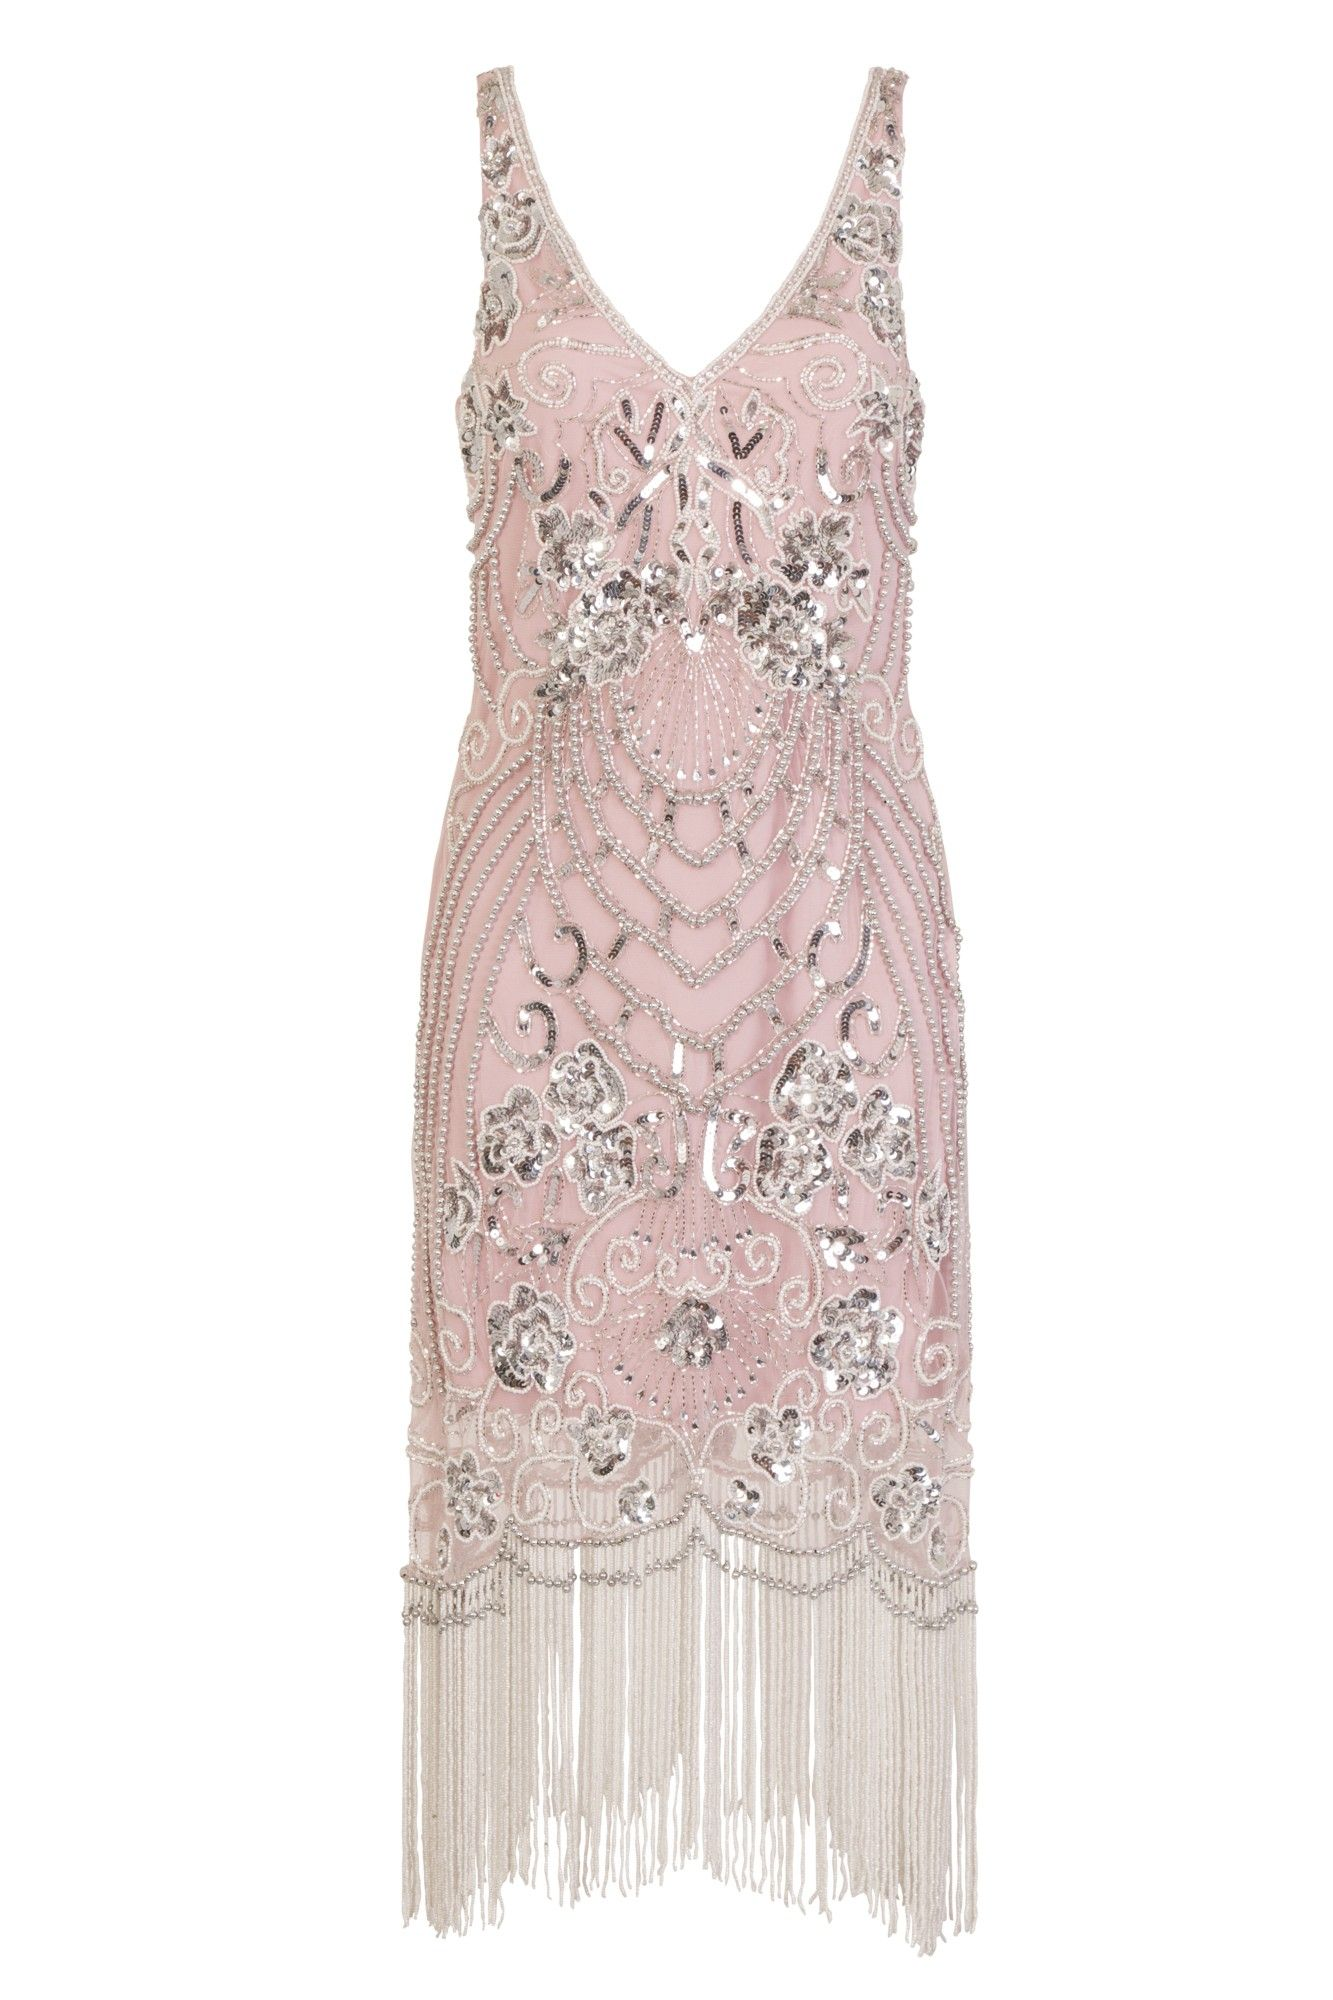 a3842c04f9 Belicia Blush Pink Sequin Flapper Dress in 2019 | whimsy wardrobe ...